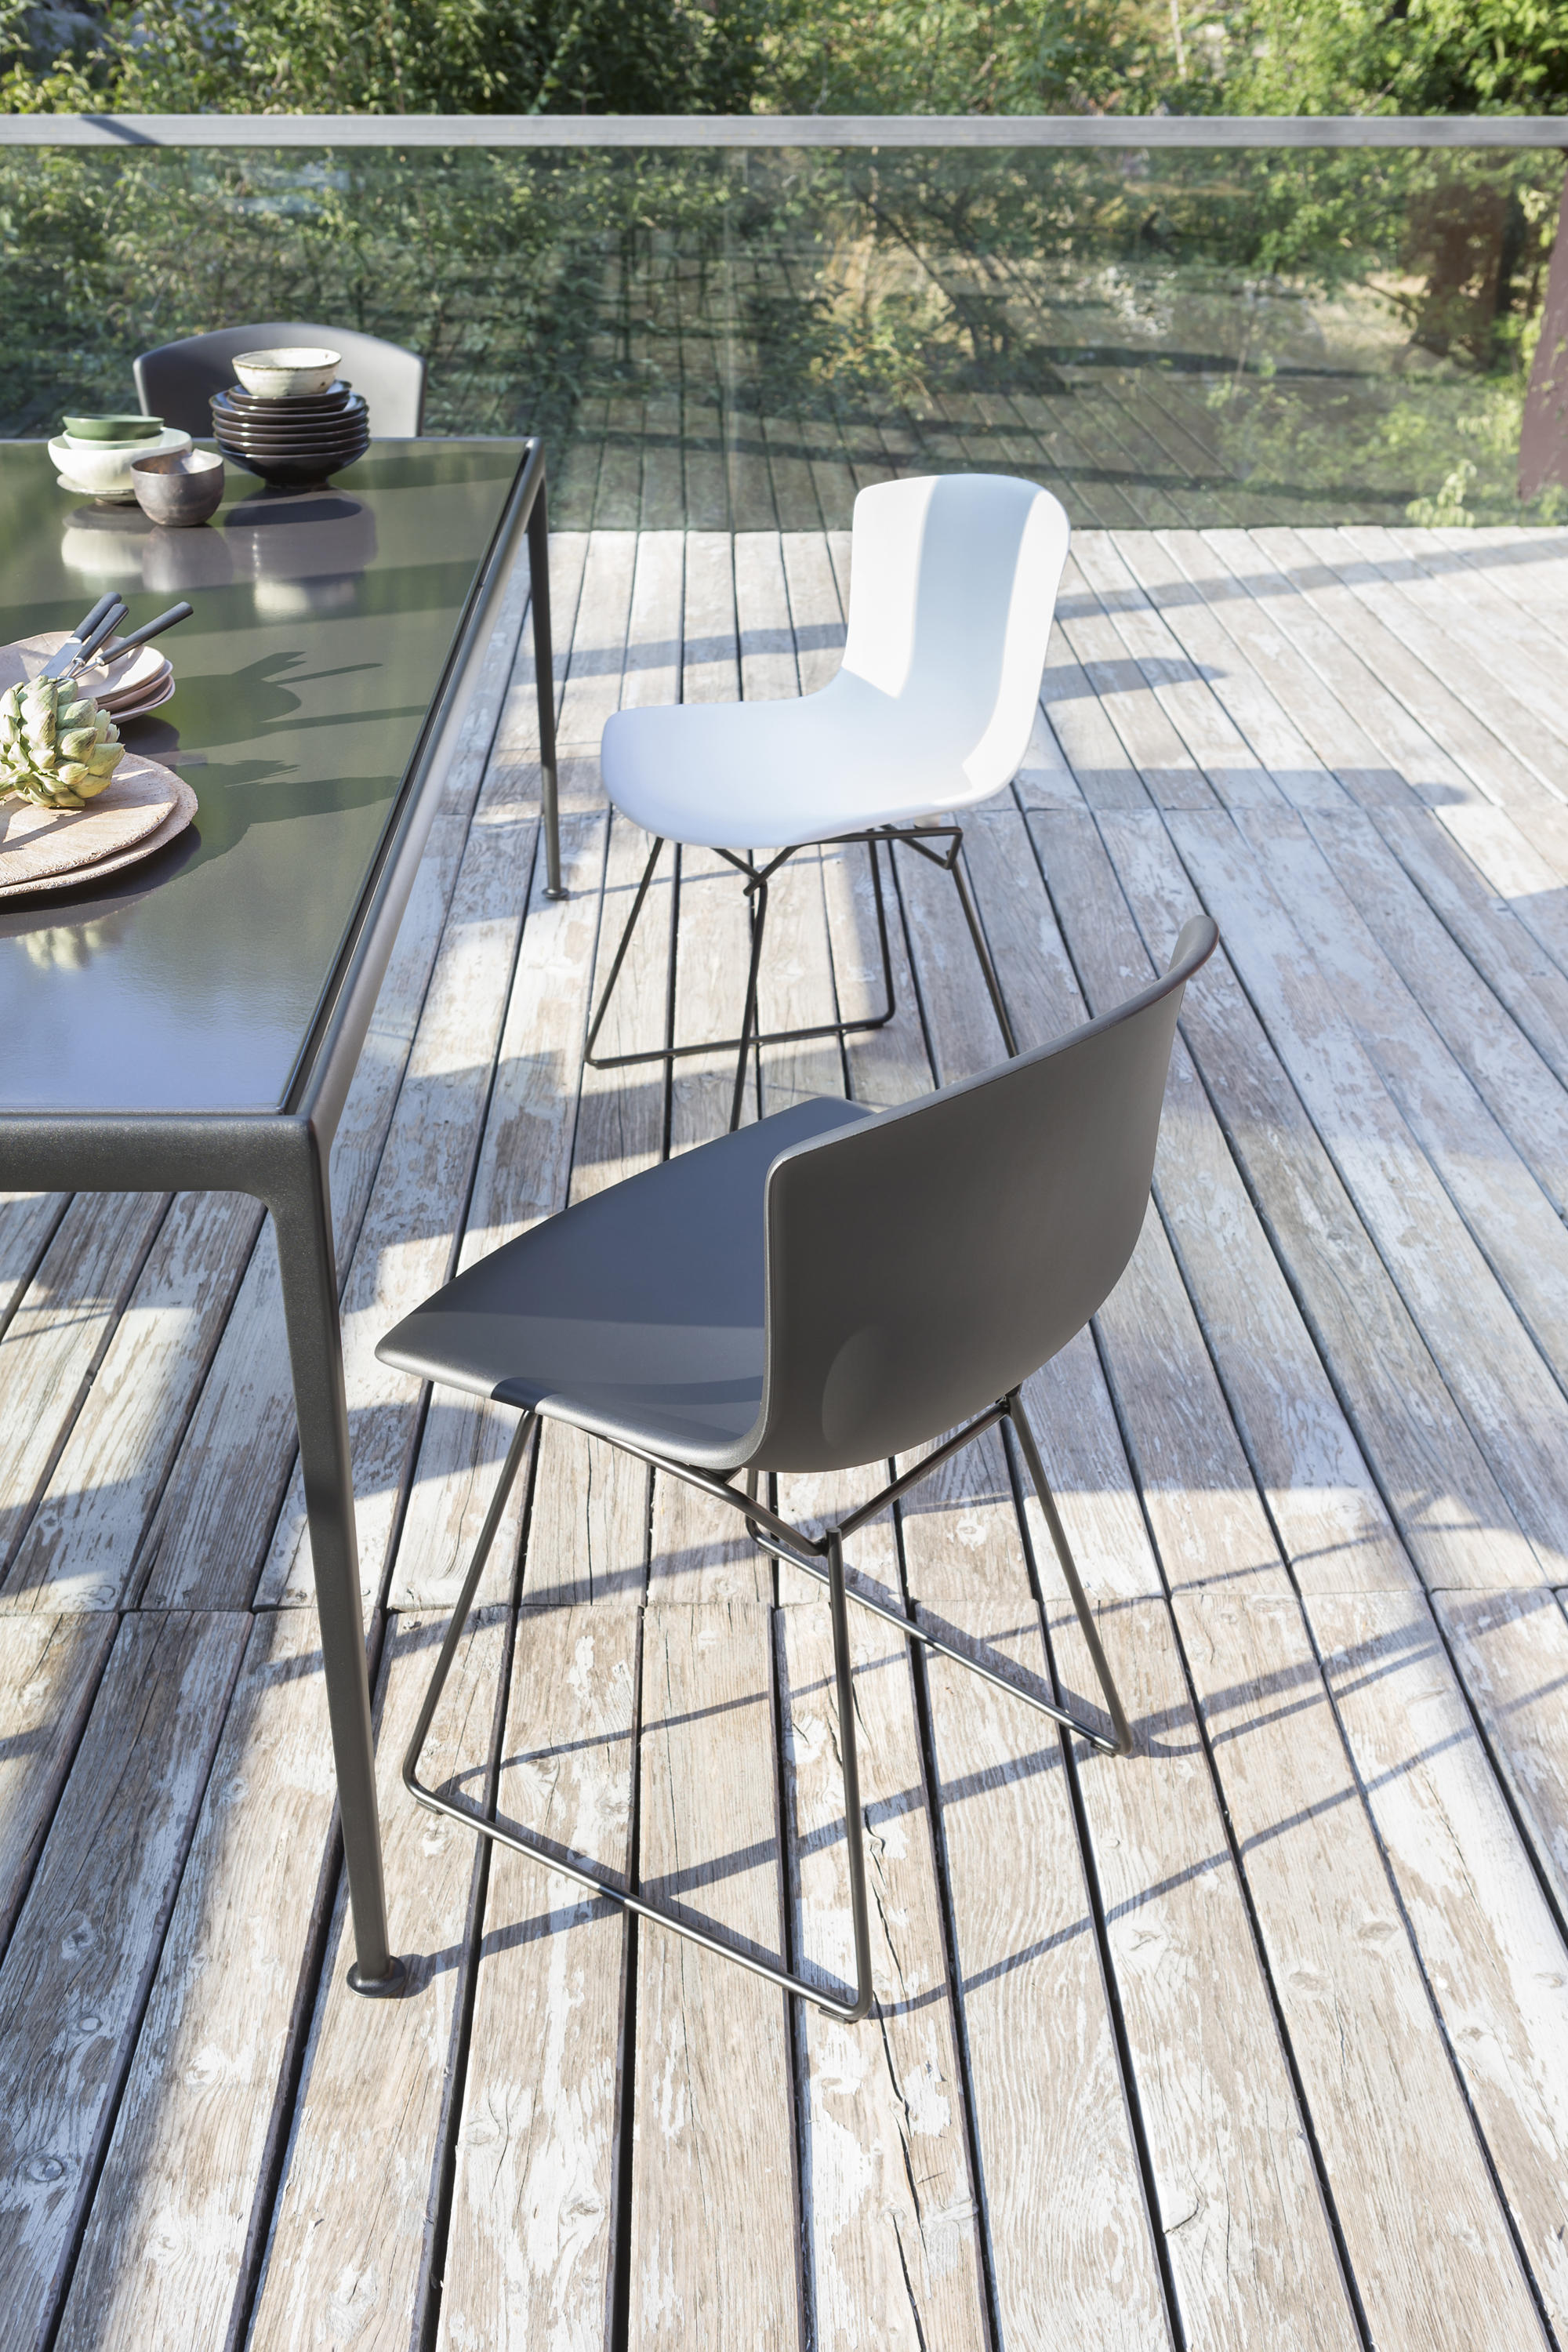 bertoia side chair round chess table with chairs from knoll international architonic